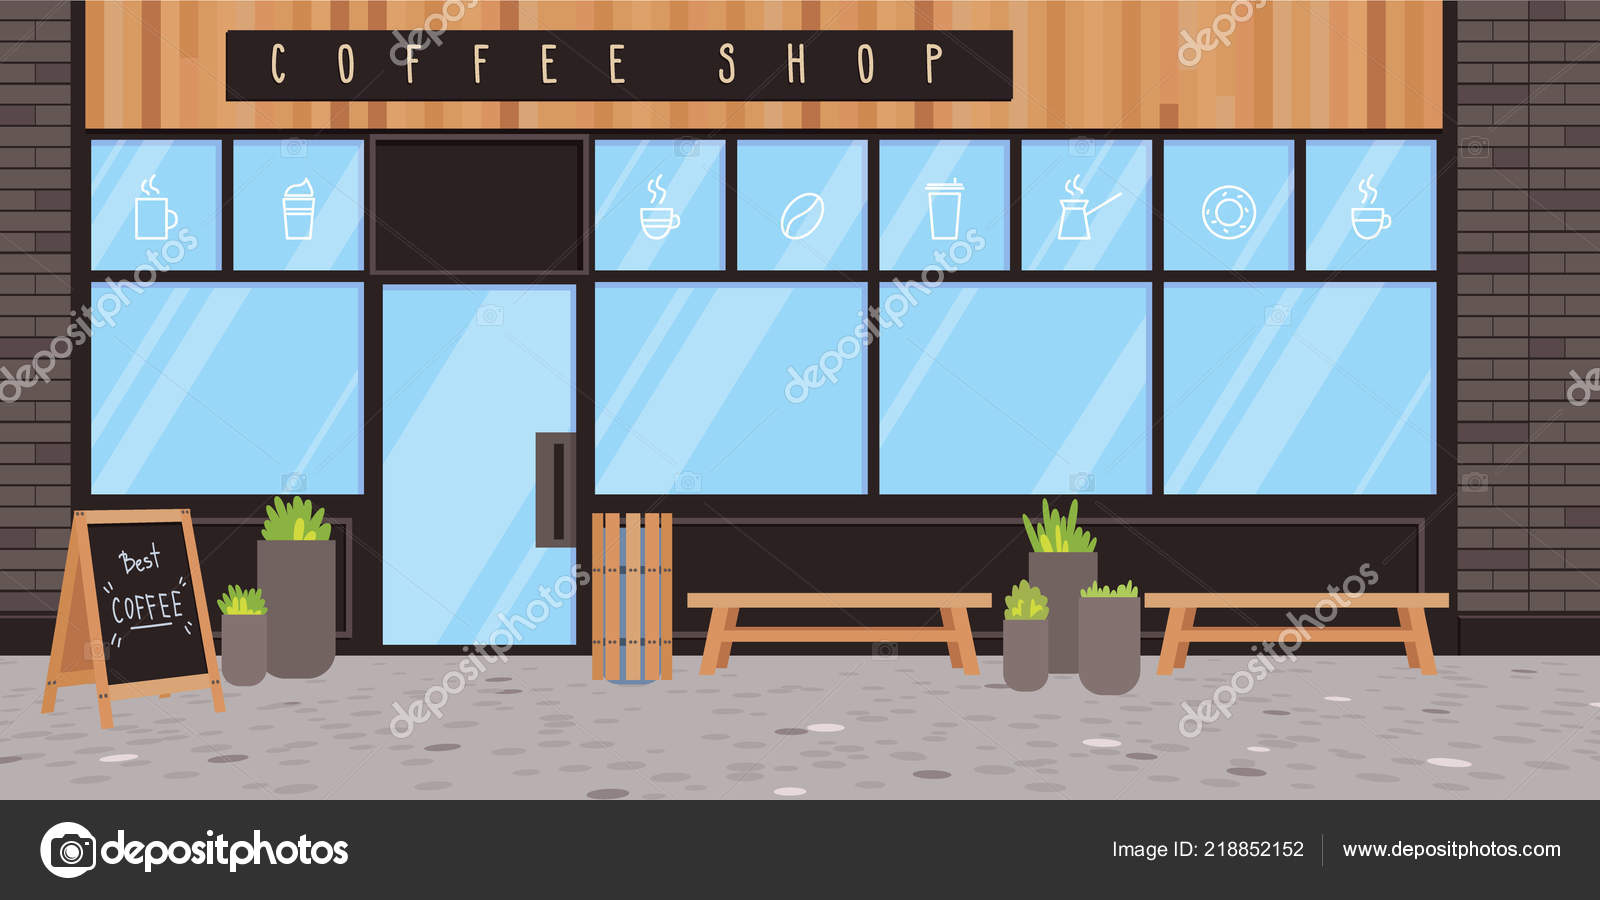 Perfect Coffee Shop Exterior Vector Flat Illustration Modern Design Black Bricksu2013  Stock Illustration